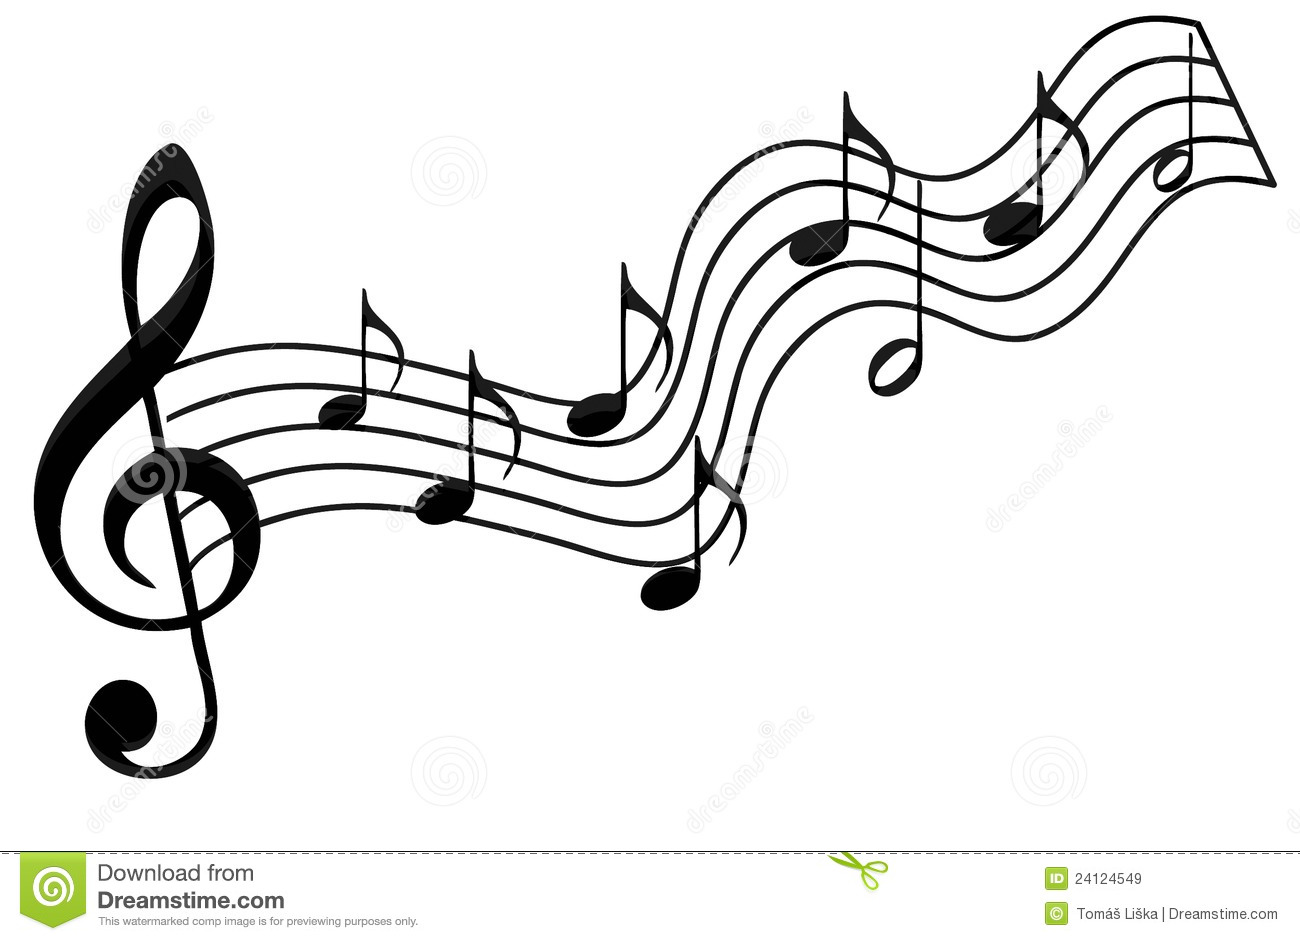 Music notes stock illustration. Illustration of isolated